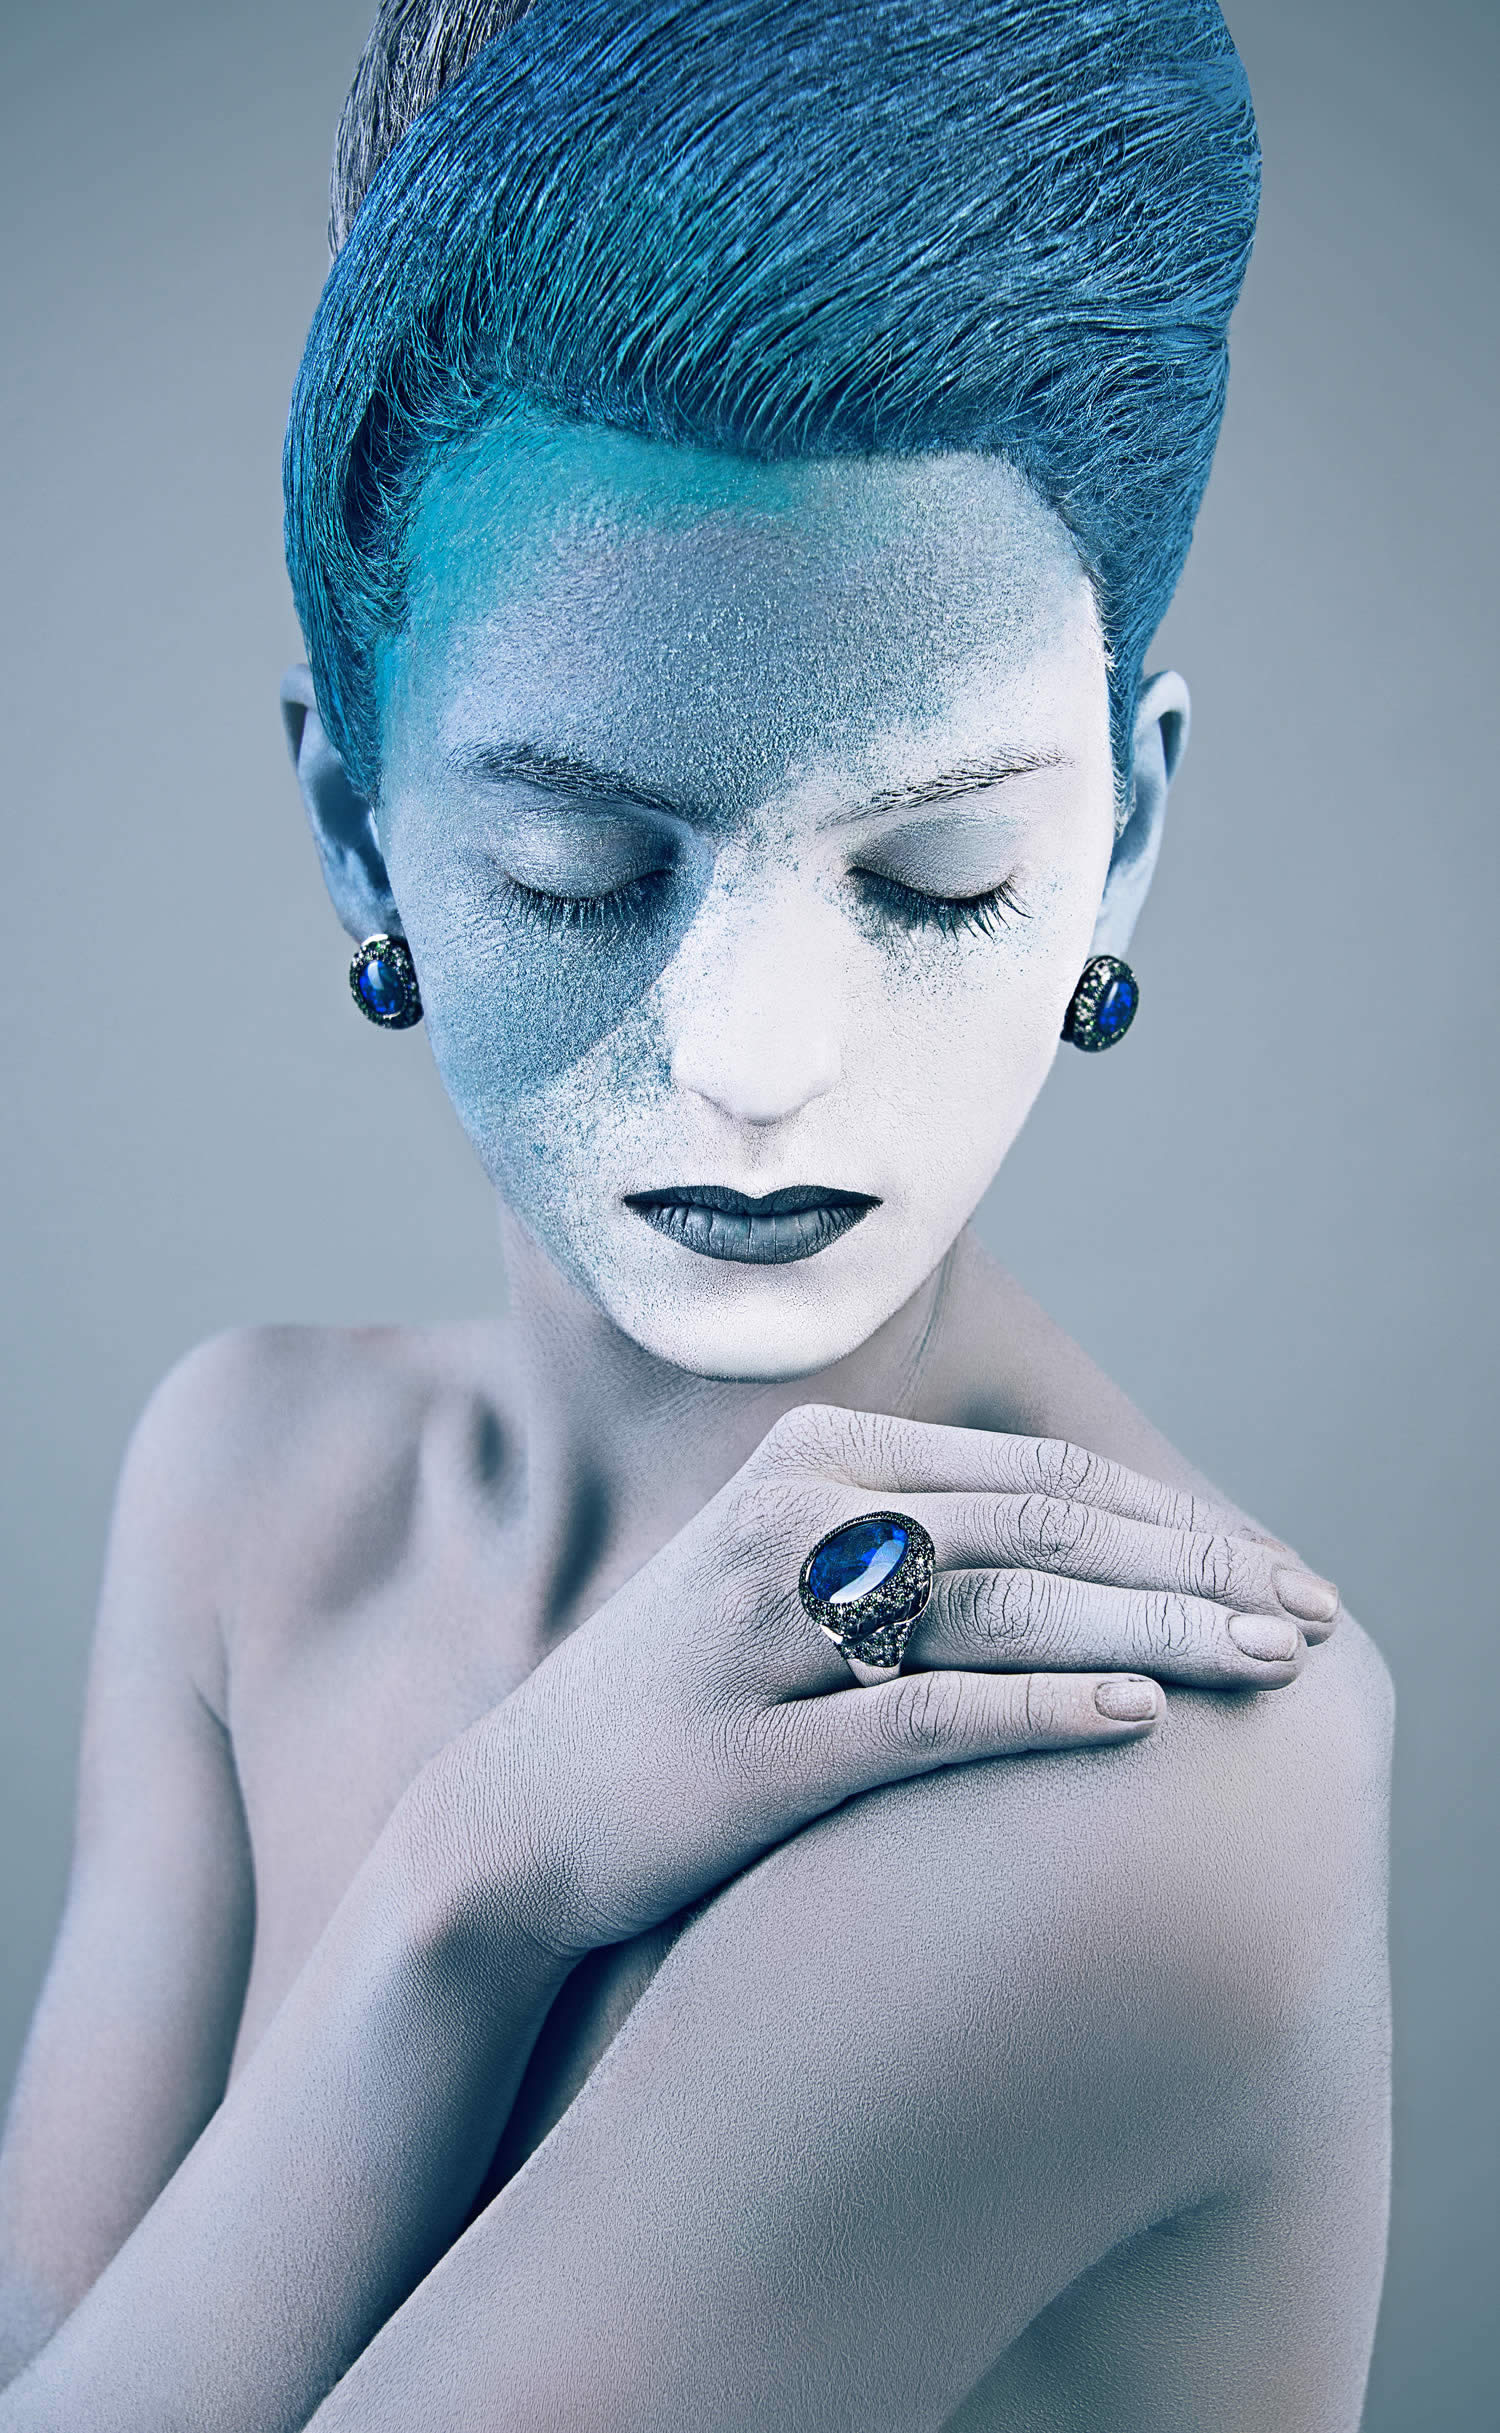 woman with blue and white painted face by Azaryan Veronica